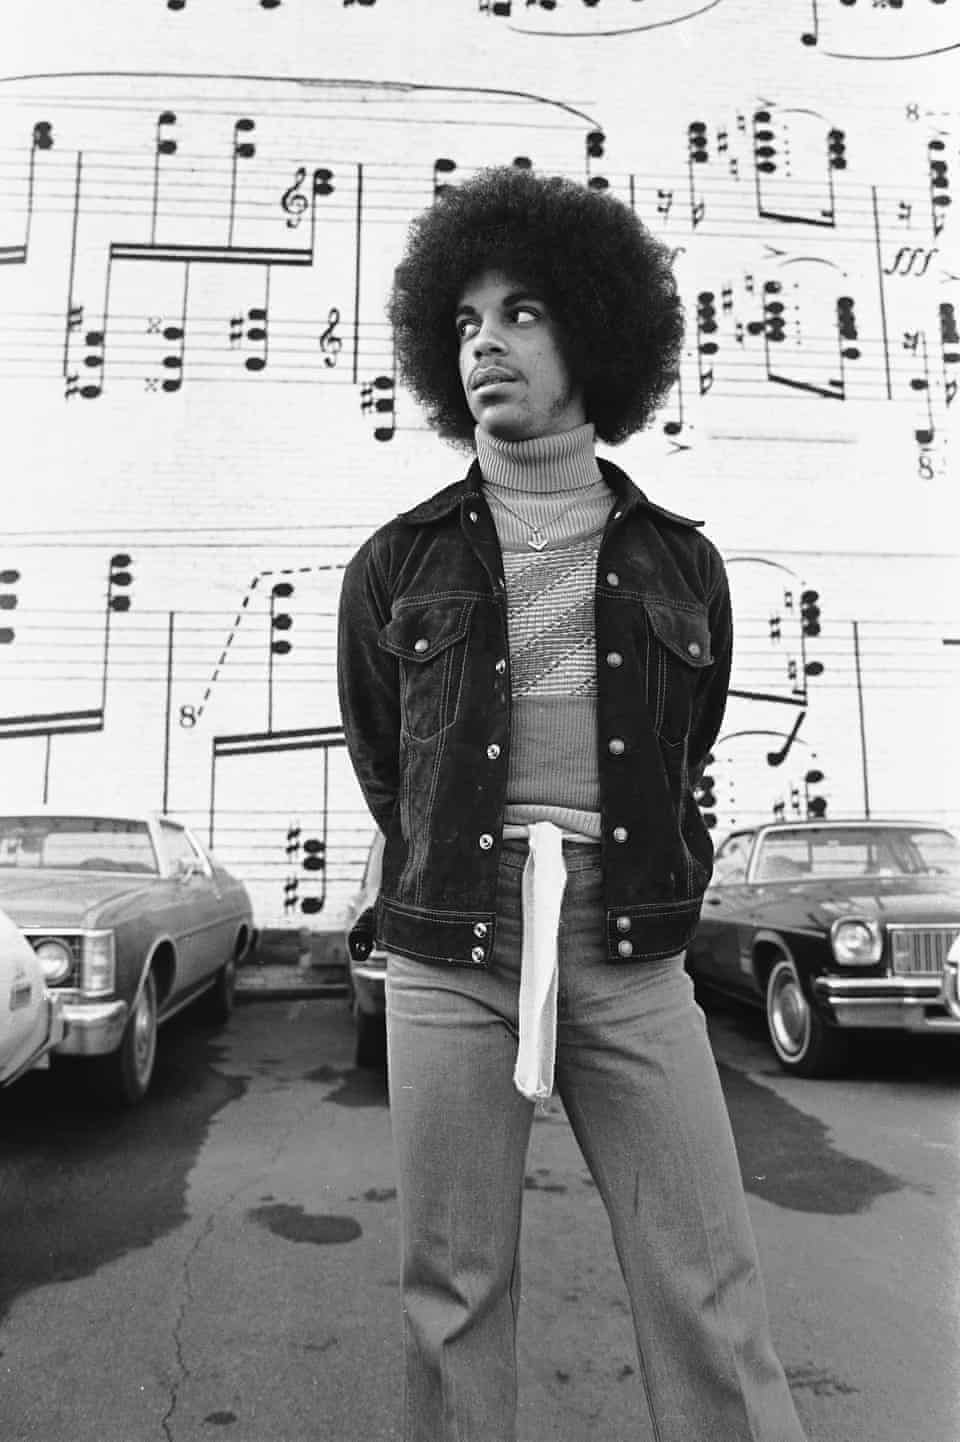 Before the purple rain: Prince in 1970s Minneapolis – in pictures